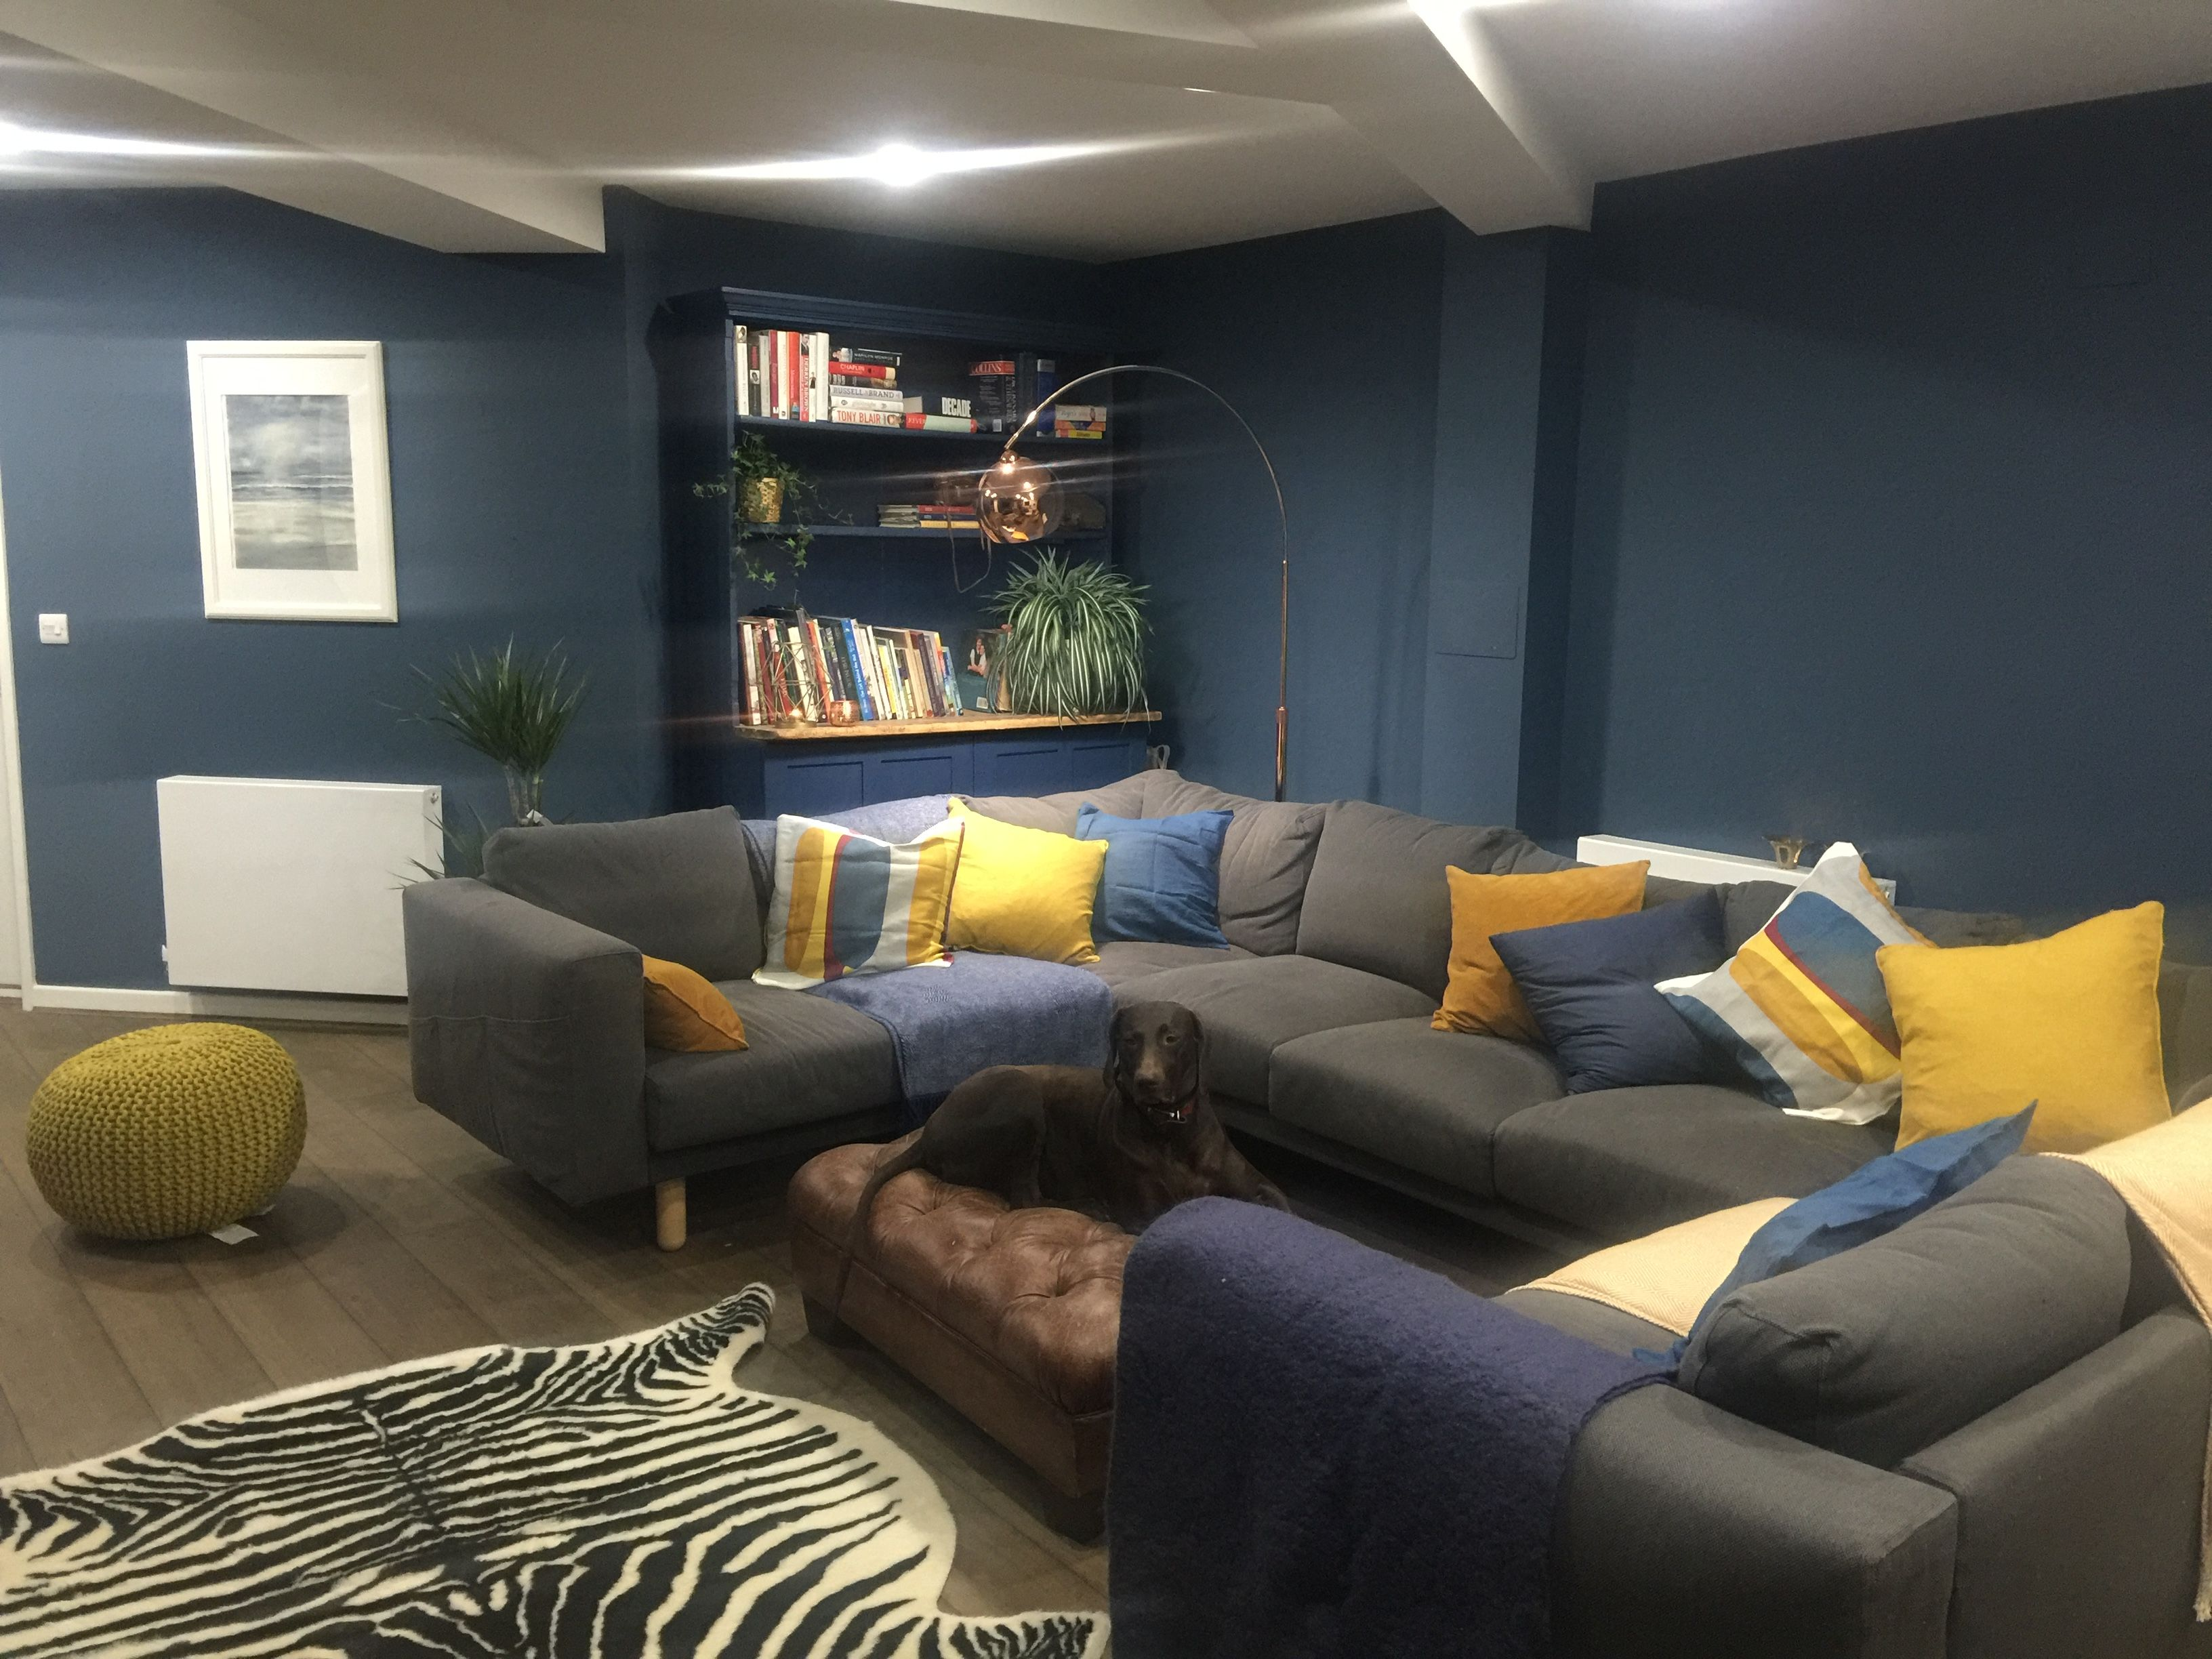 Farrow And Ball Stiffkey Blue Living Room With Mustard Colour Pops Blue Walls Living Room Mustard Living Rooms Blue And Mustard Living Room